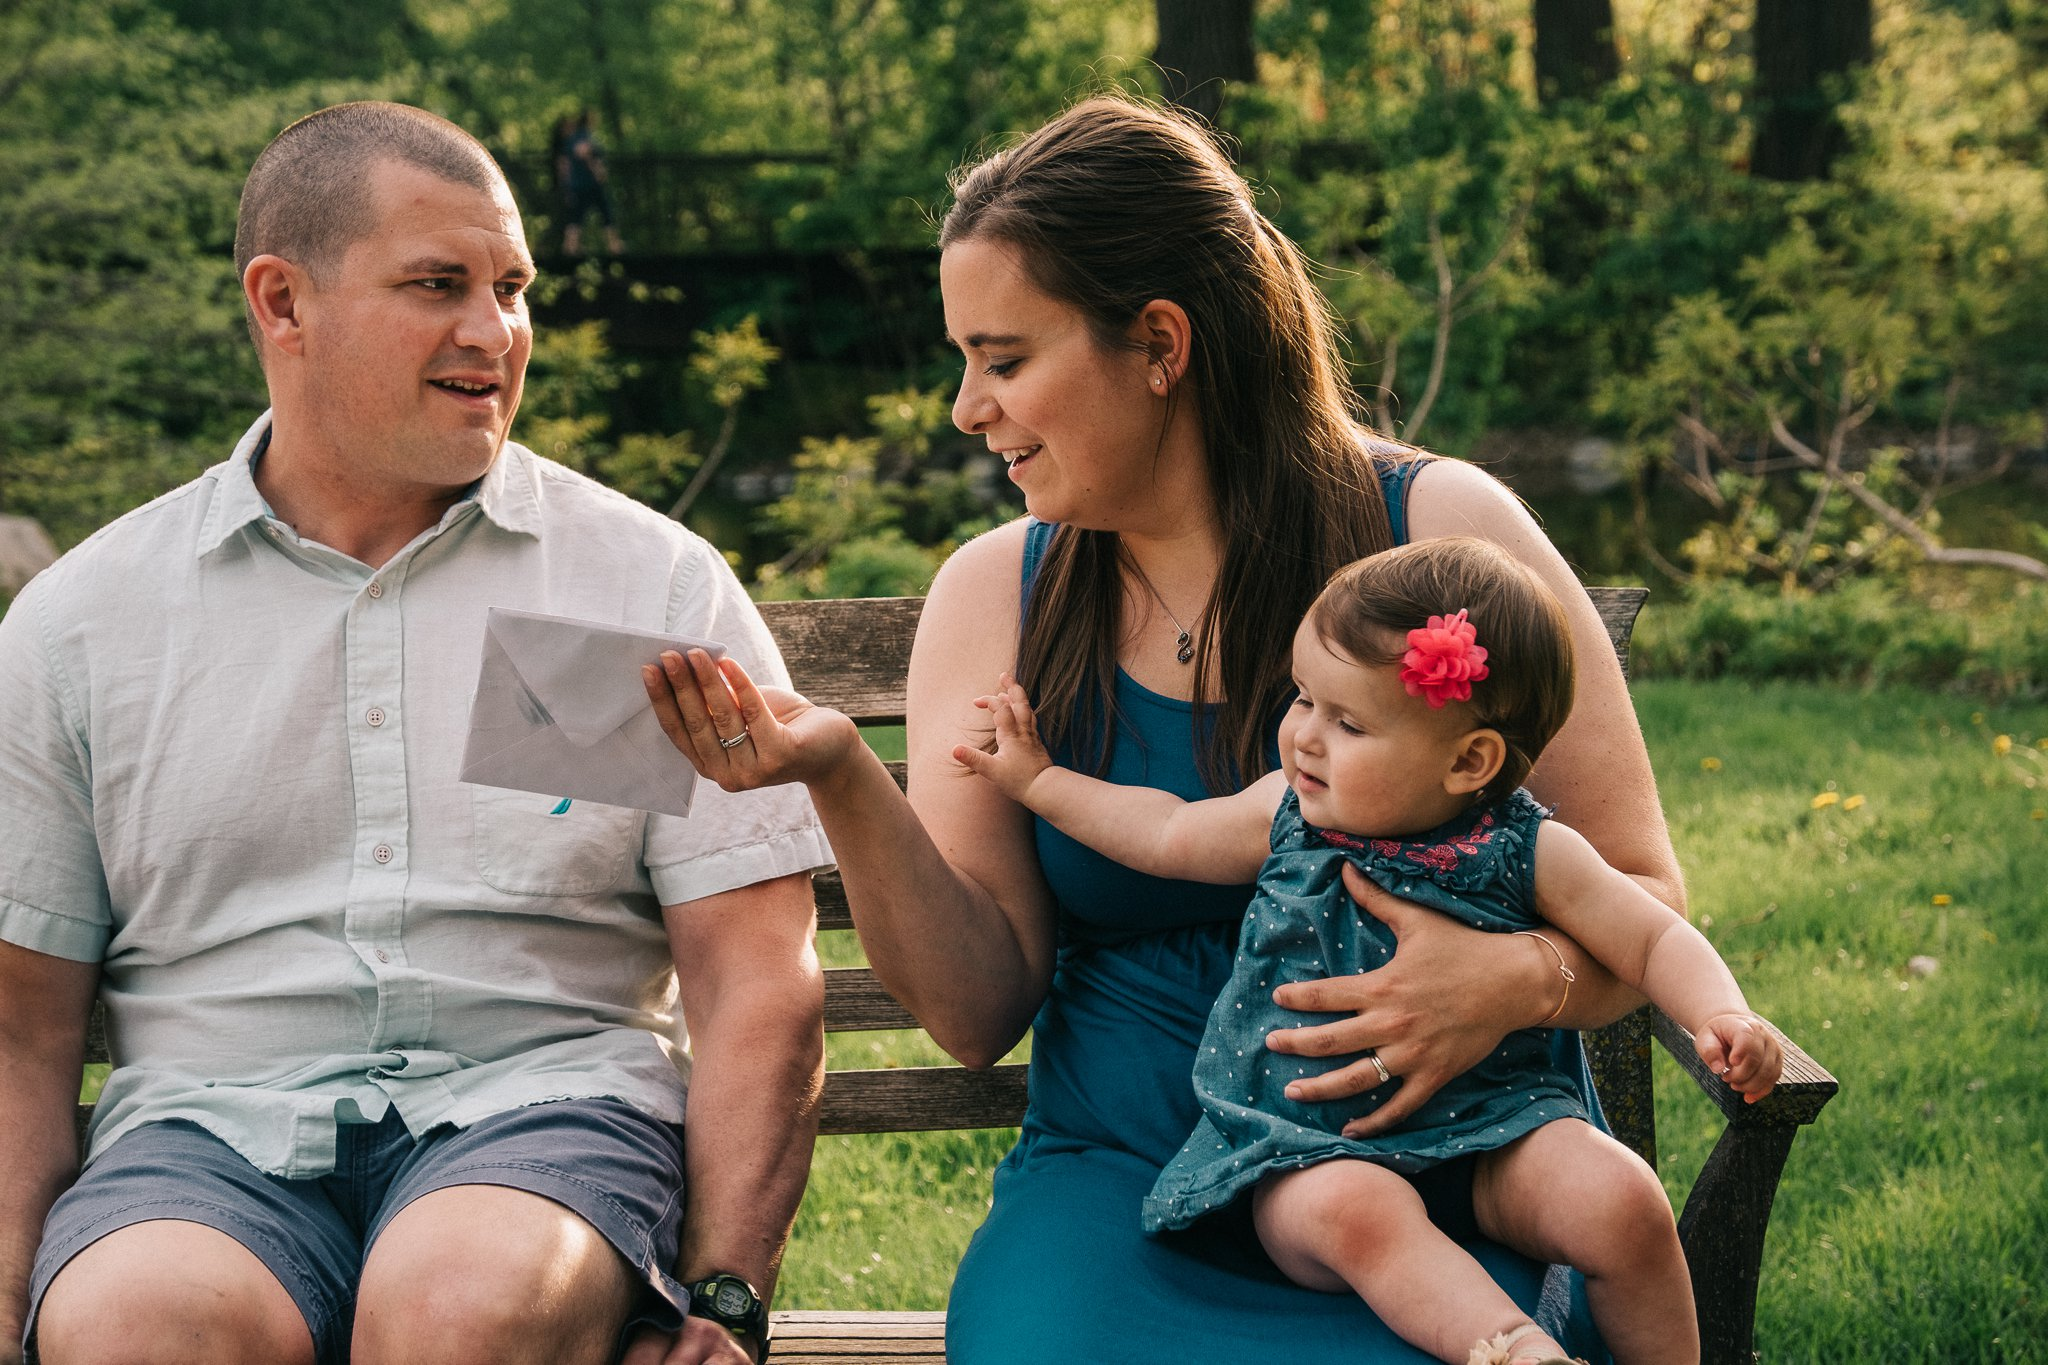 Olbrich Garden's Family Session